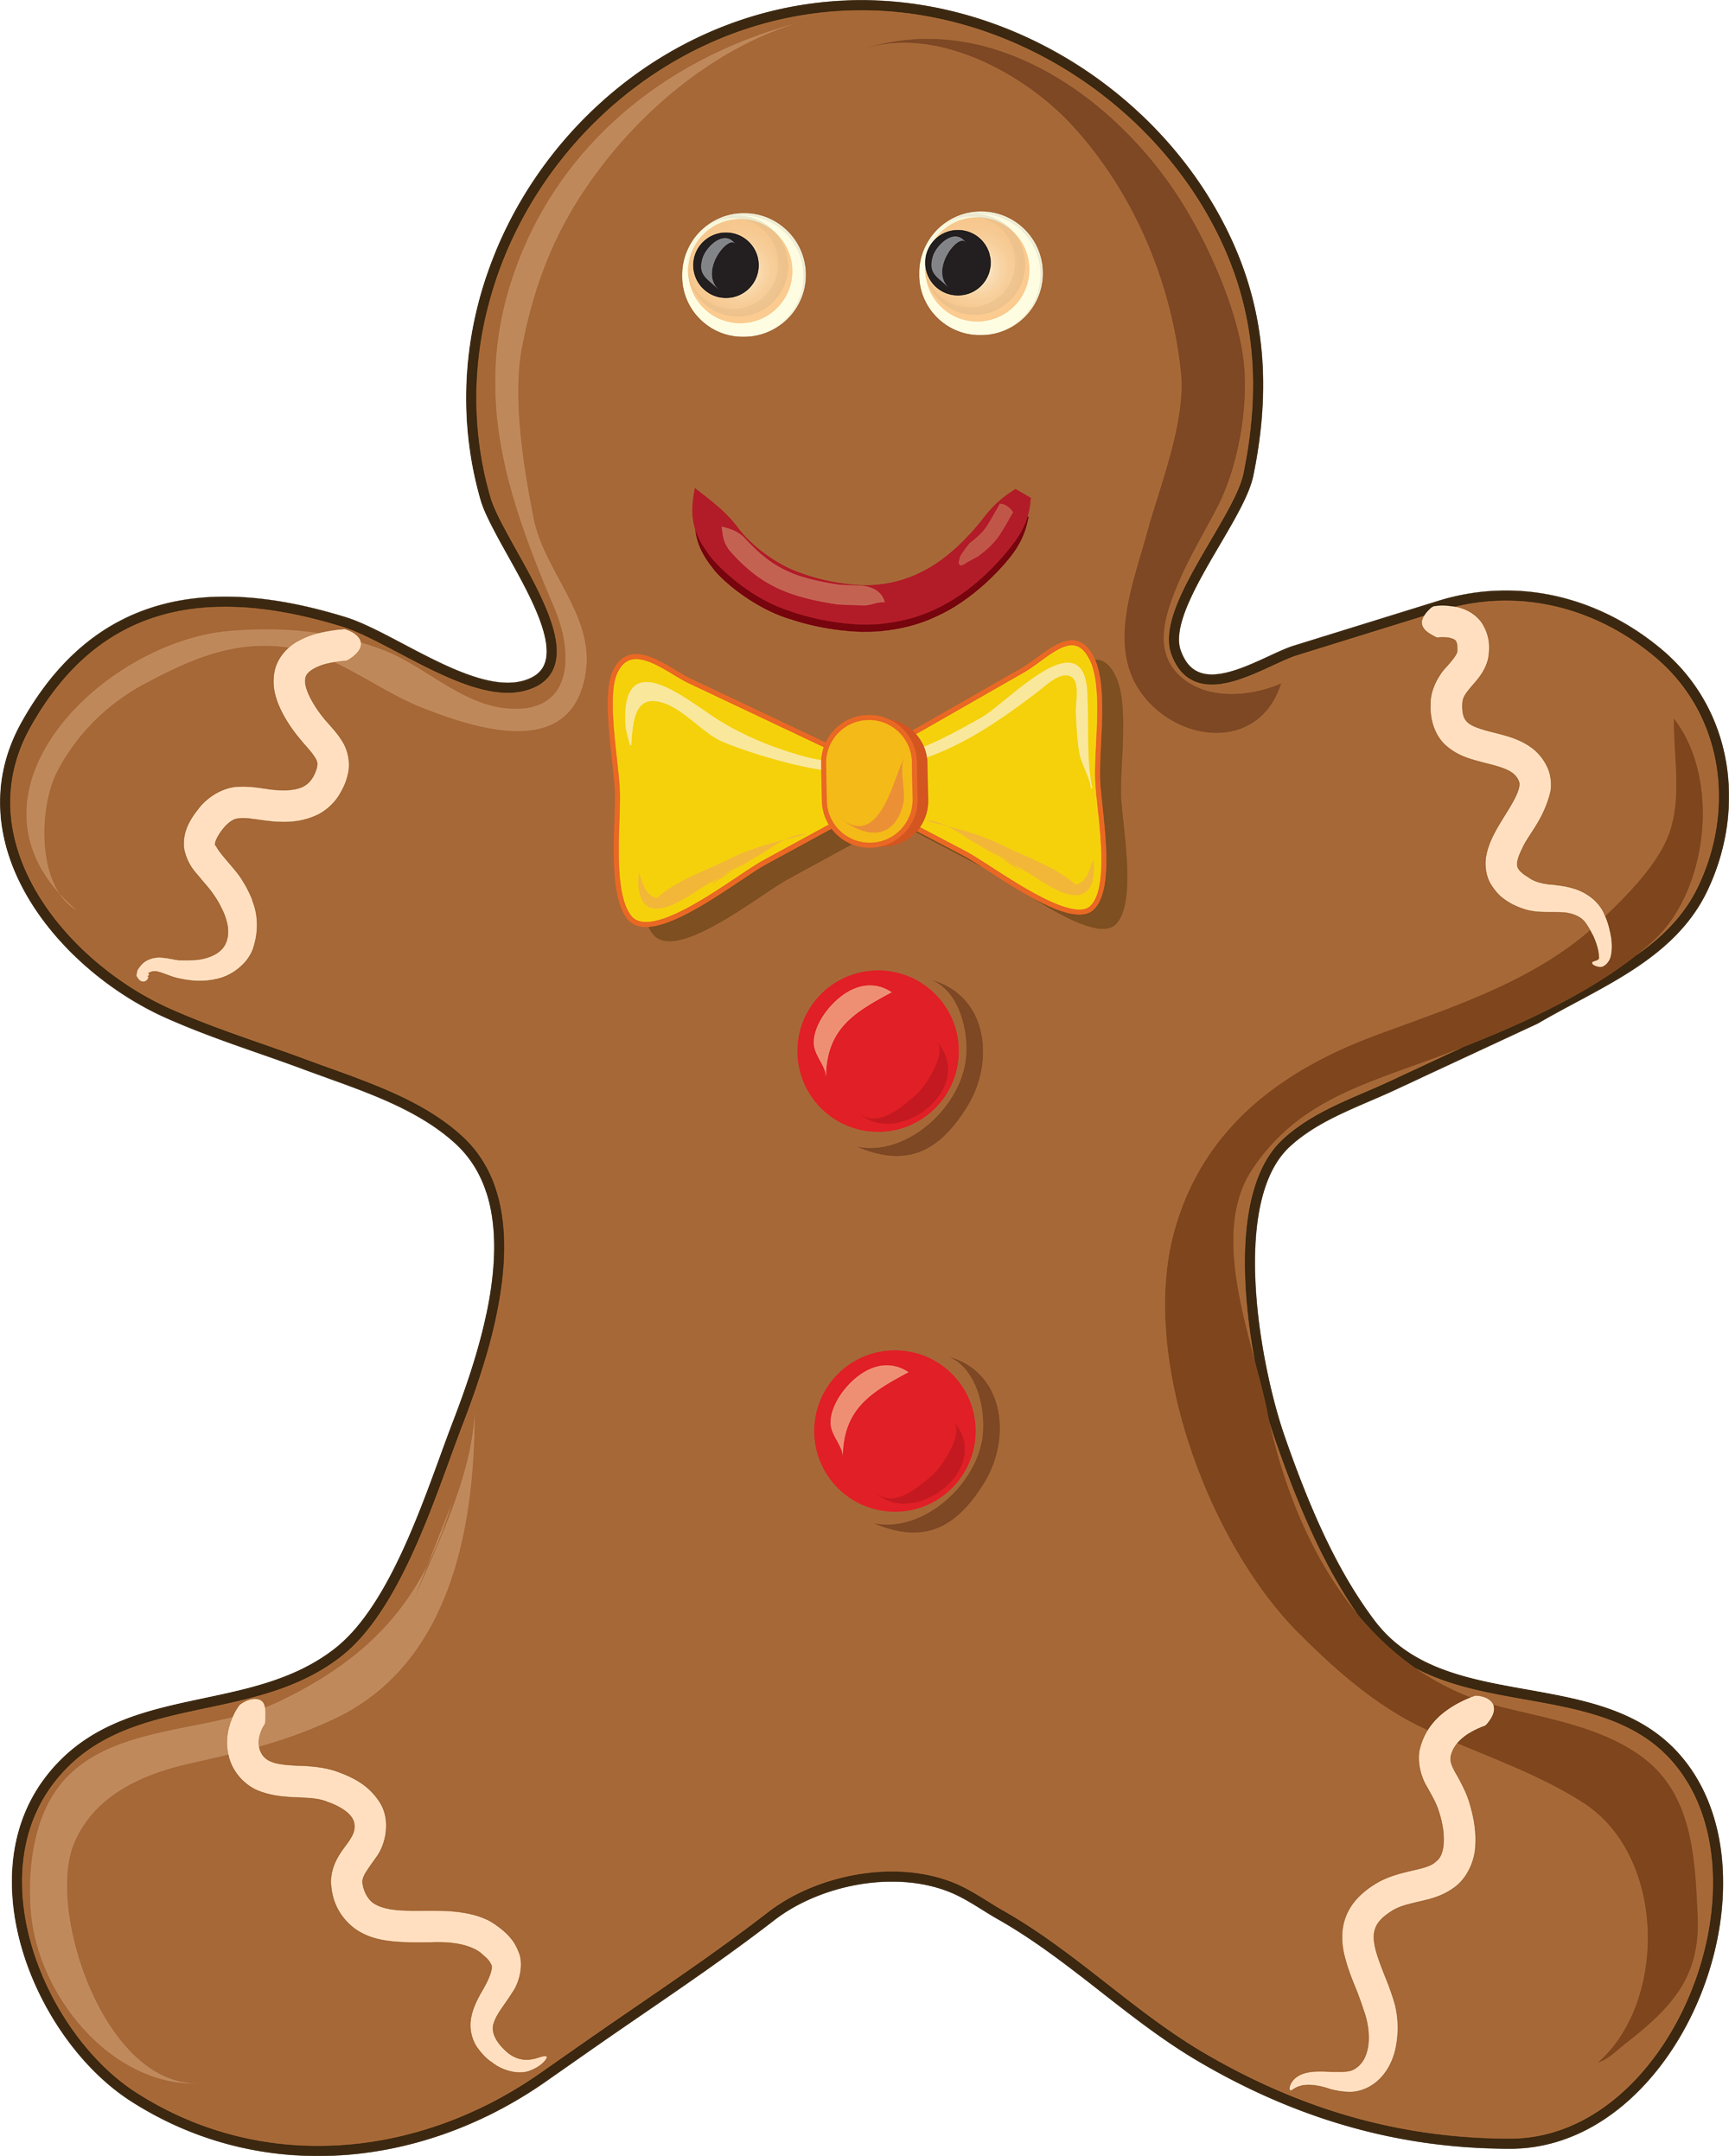 gingerbread man gingerbread man clip art gingerbread pinterest rh pinterest co uk